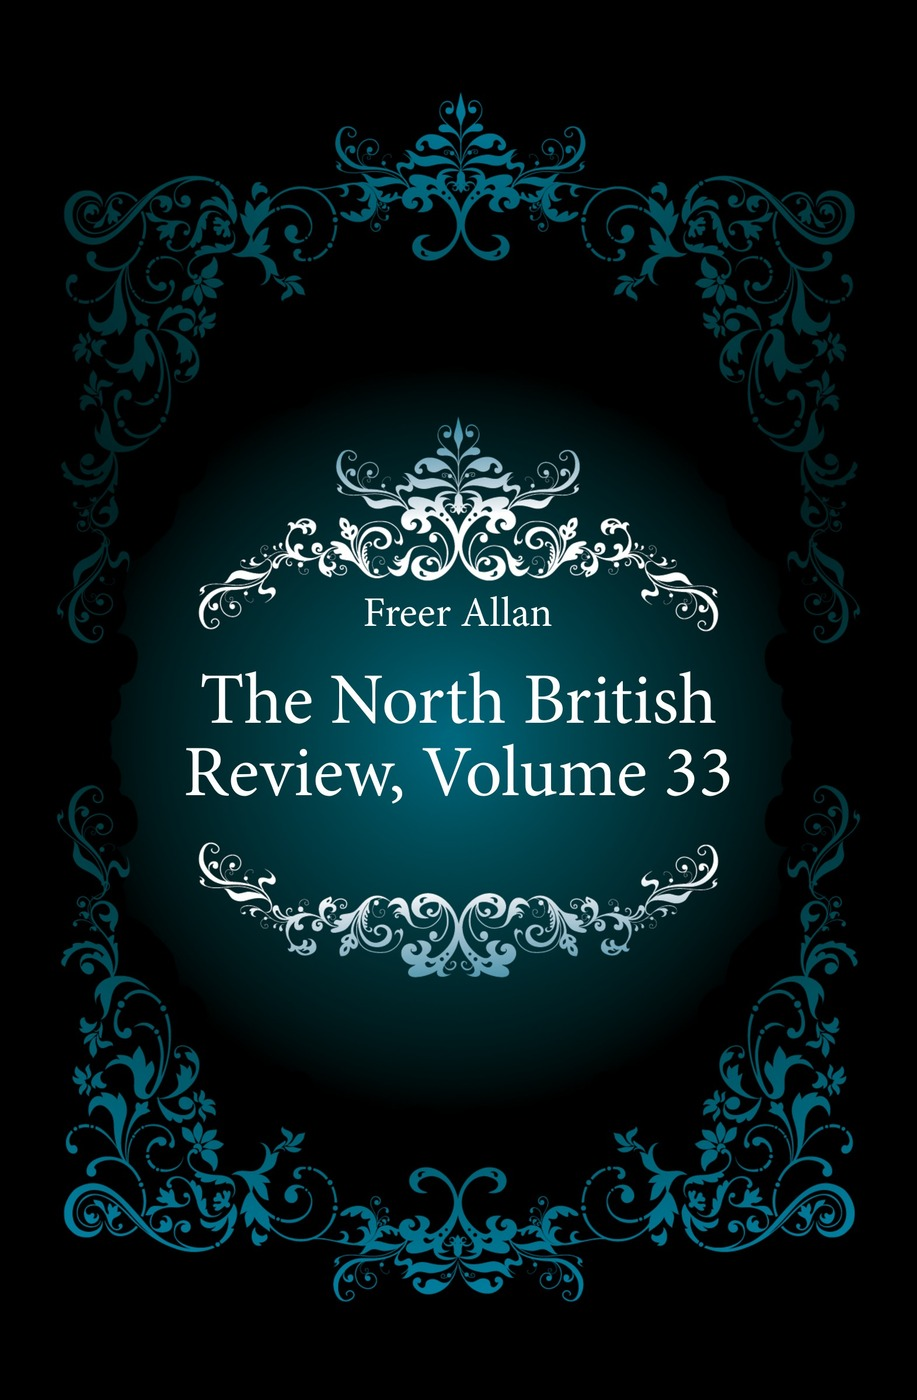 The North British Review, Volume 33